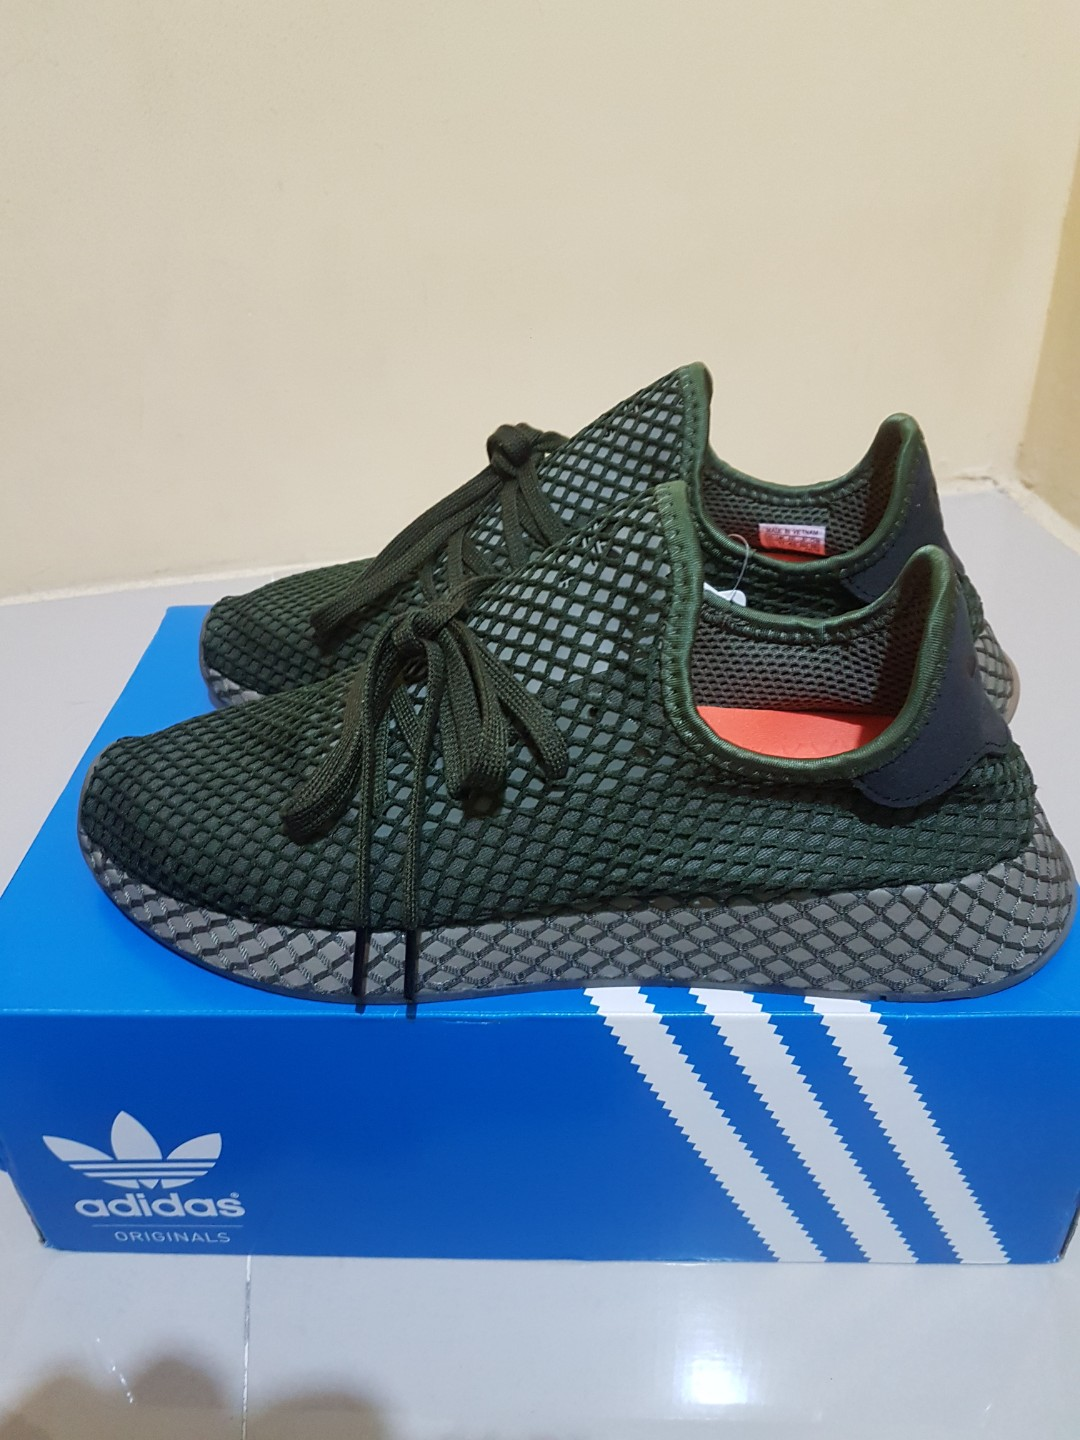 62ad9b206 Adidas deerupt runner base green size 11. 5US